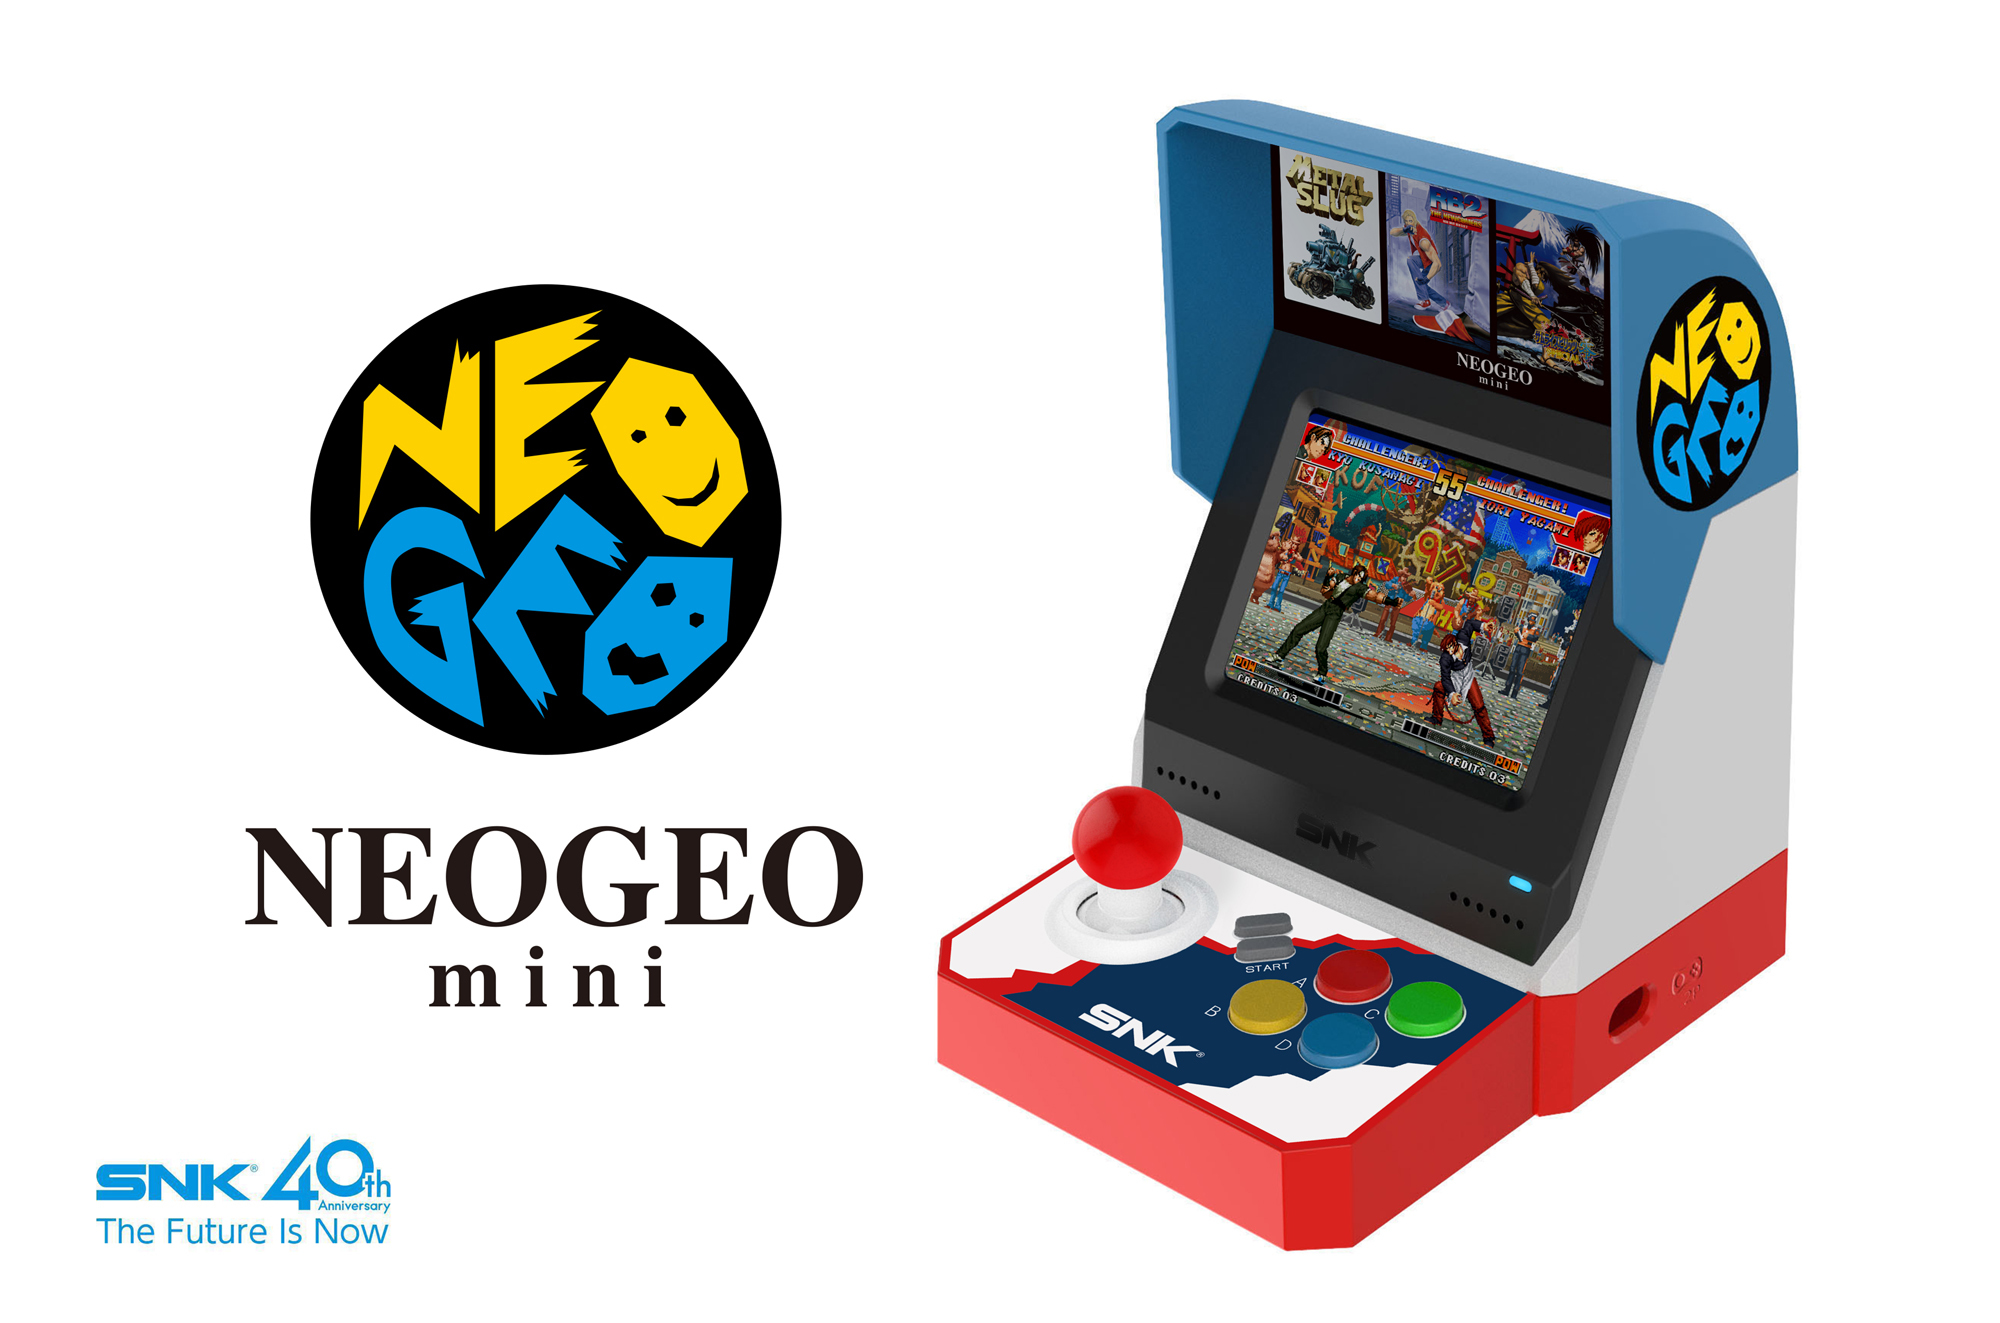 SNKブランド40周年記念して発売される「NEOGEO mini」 (C)SNK CORPORATION ALL RIGHTS RESERVED.